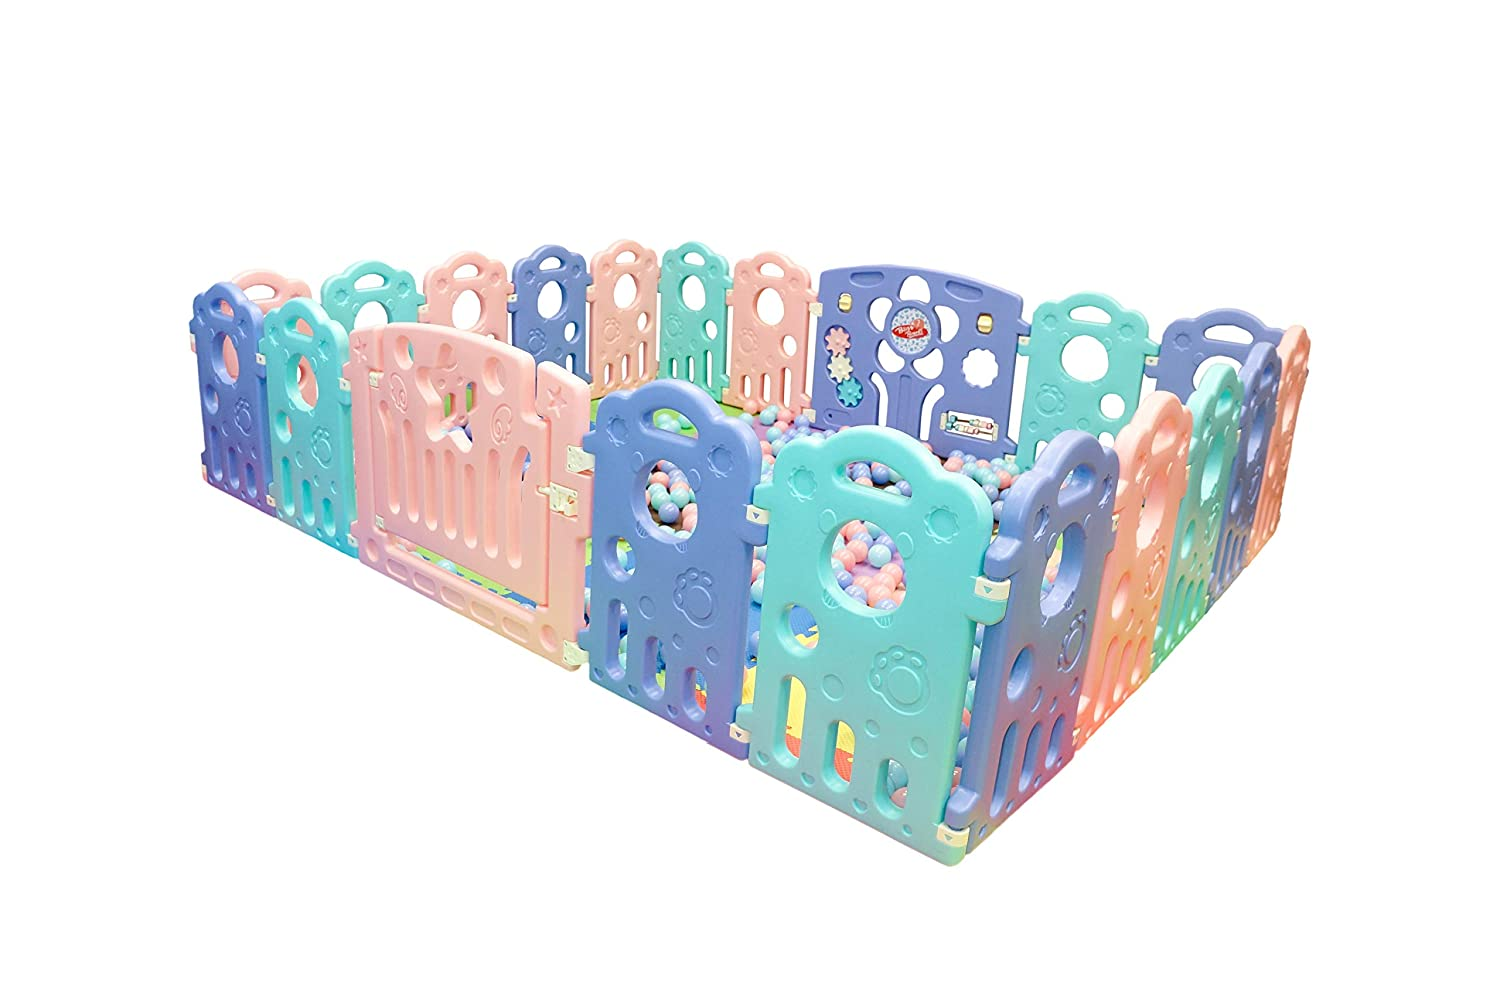 Baby Playpen for Infant and Toddler 18 Bear Panel Plus 2 Free Gates – Portable Play Yard with Gate for Babies – Large Indoor Outdoor Plastic Play Pen with Panels – Safety Playgate with Fence for Kids